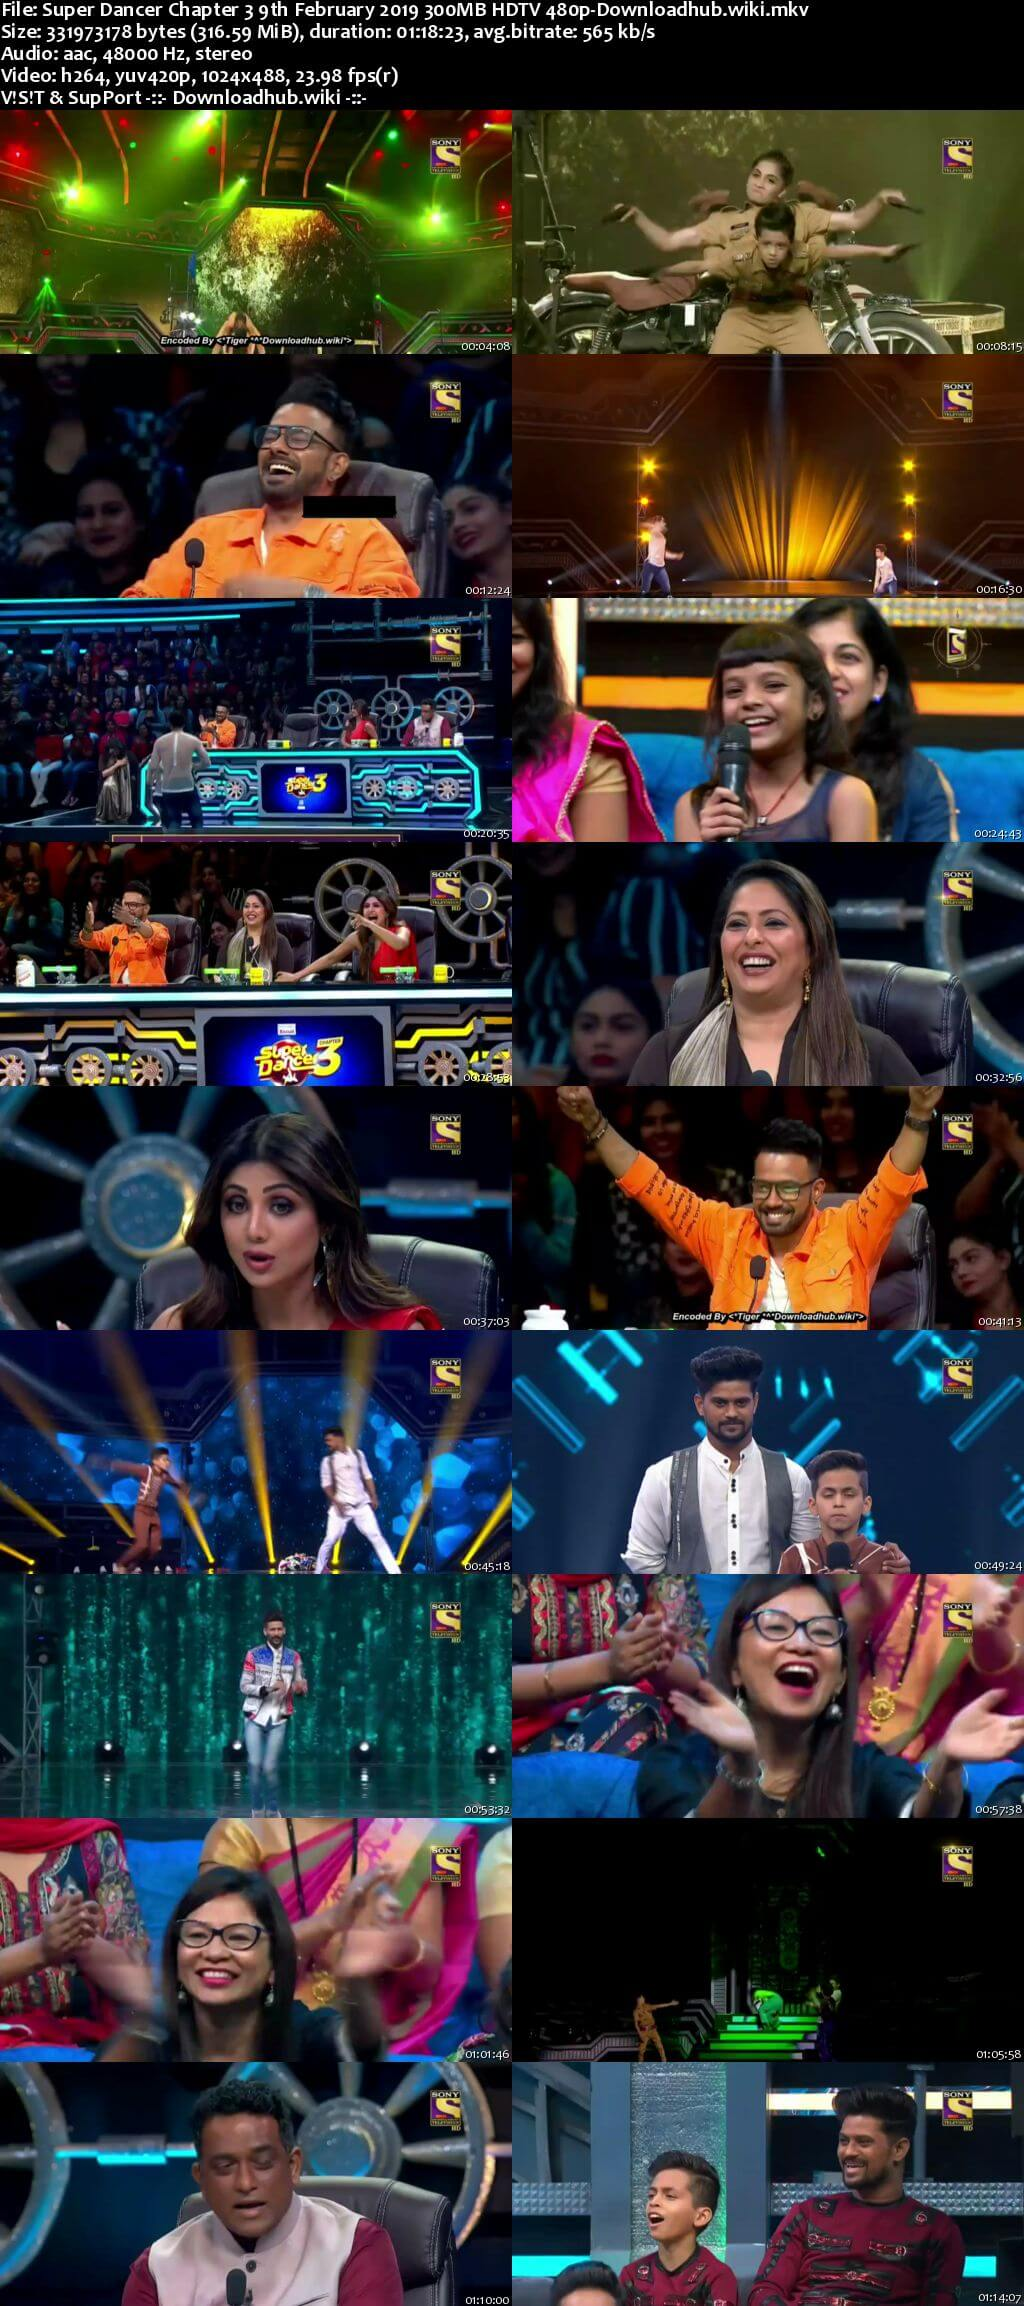 Super Dancer Chapter 3 09 February 2019 Episode 13 HDTV 480p